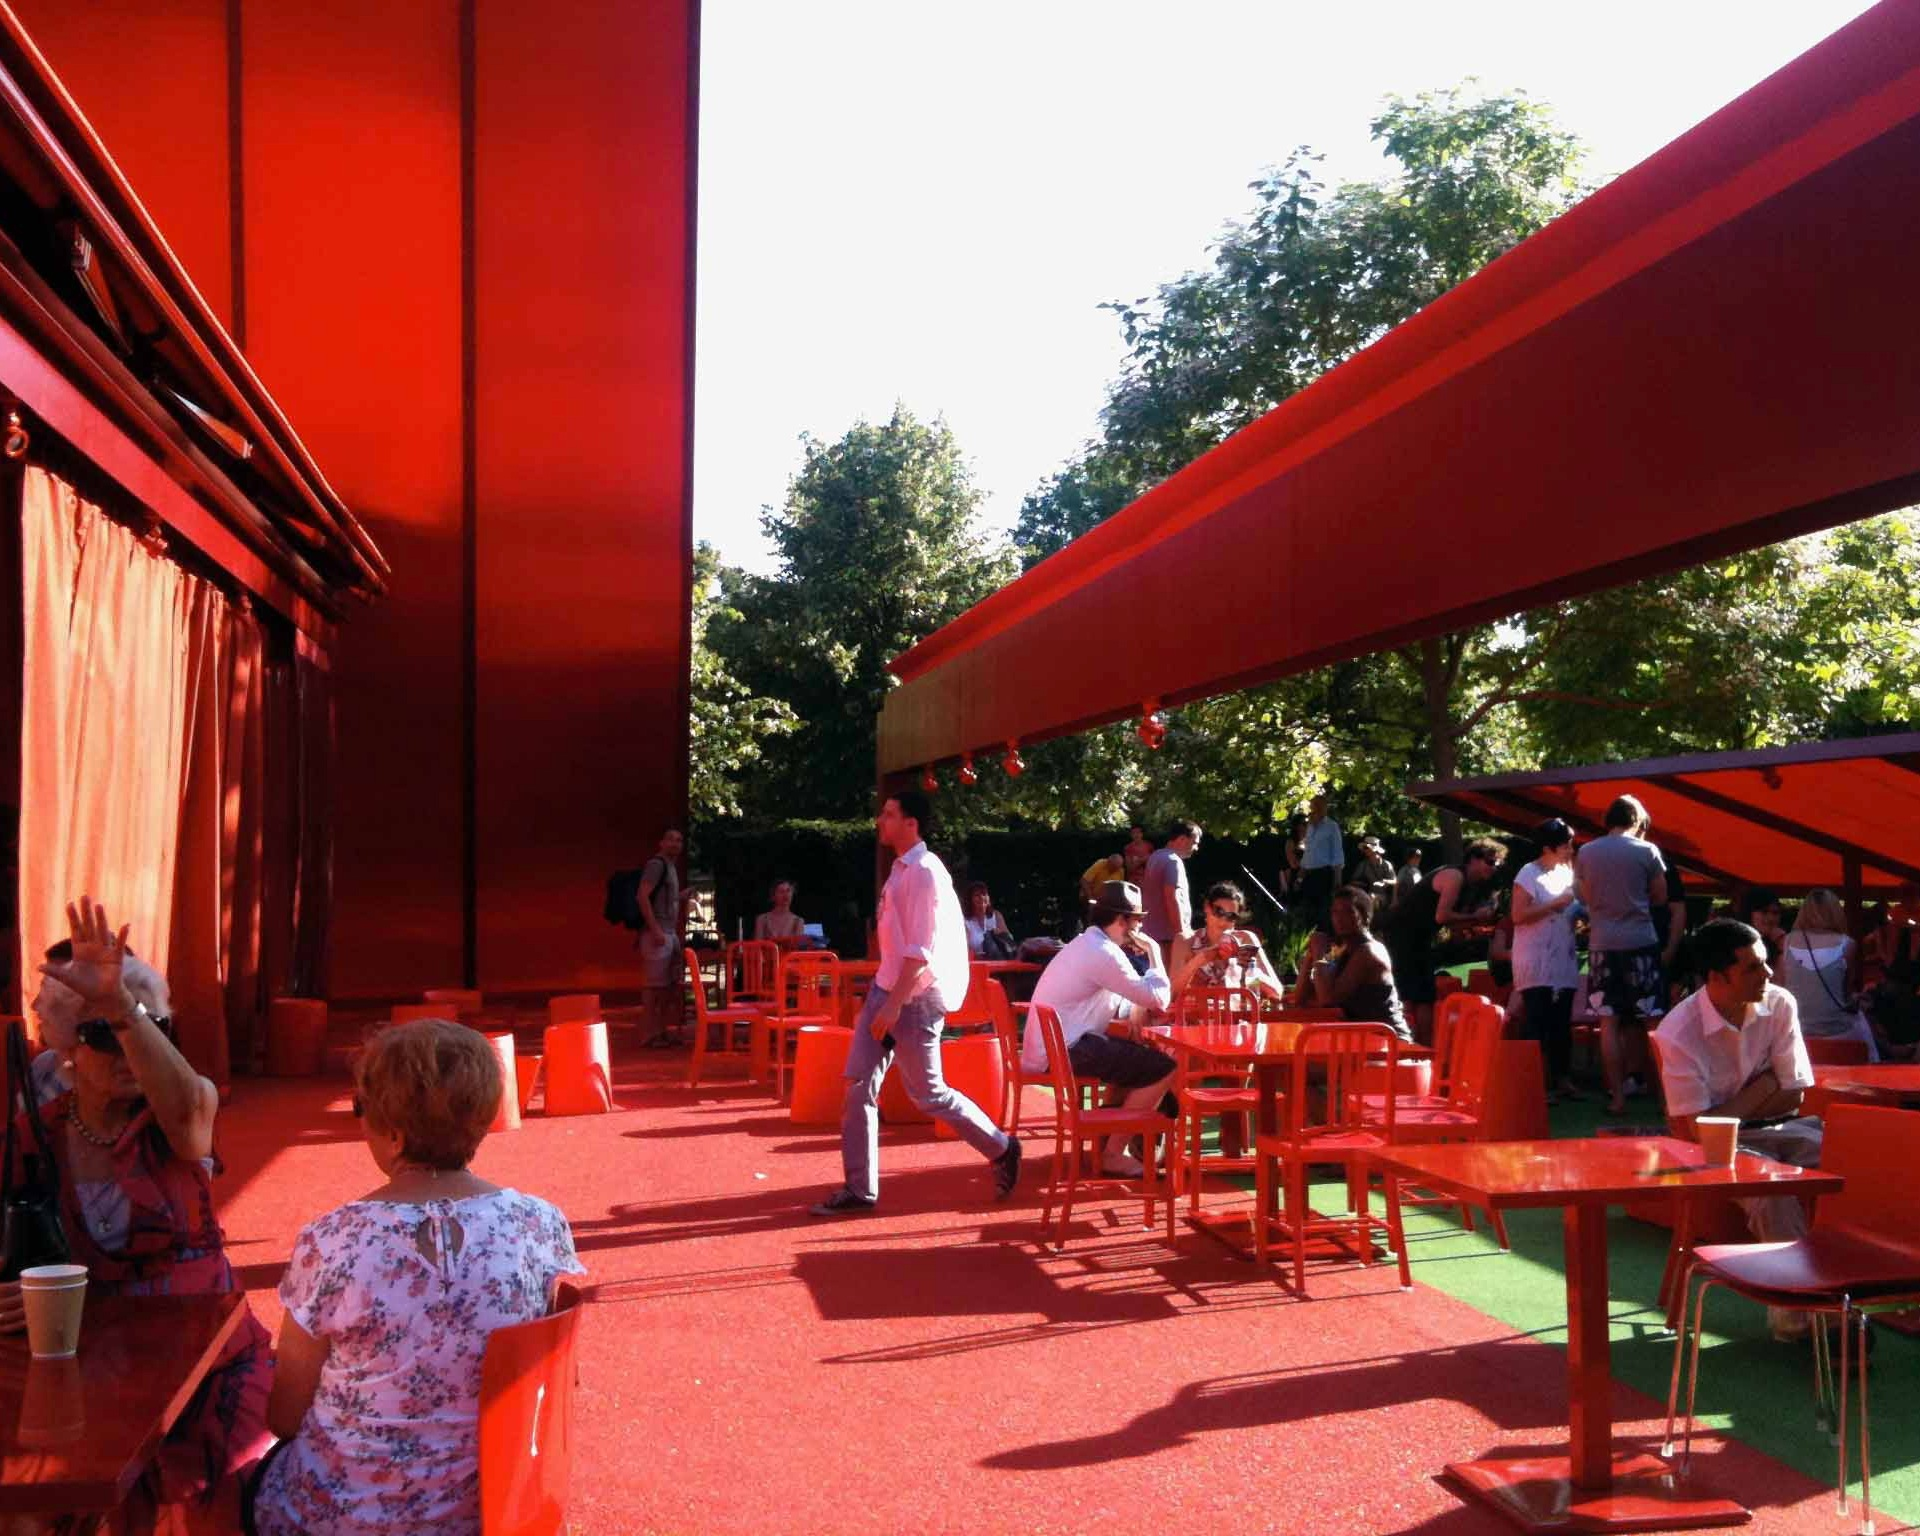 The Serpentine Pavilion, a summer staple in London's Hyde Park